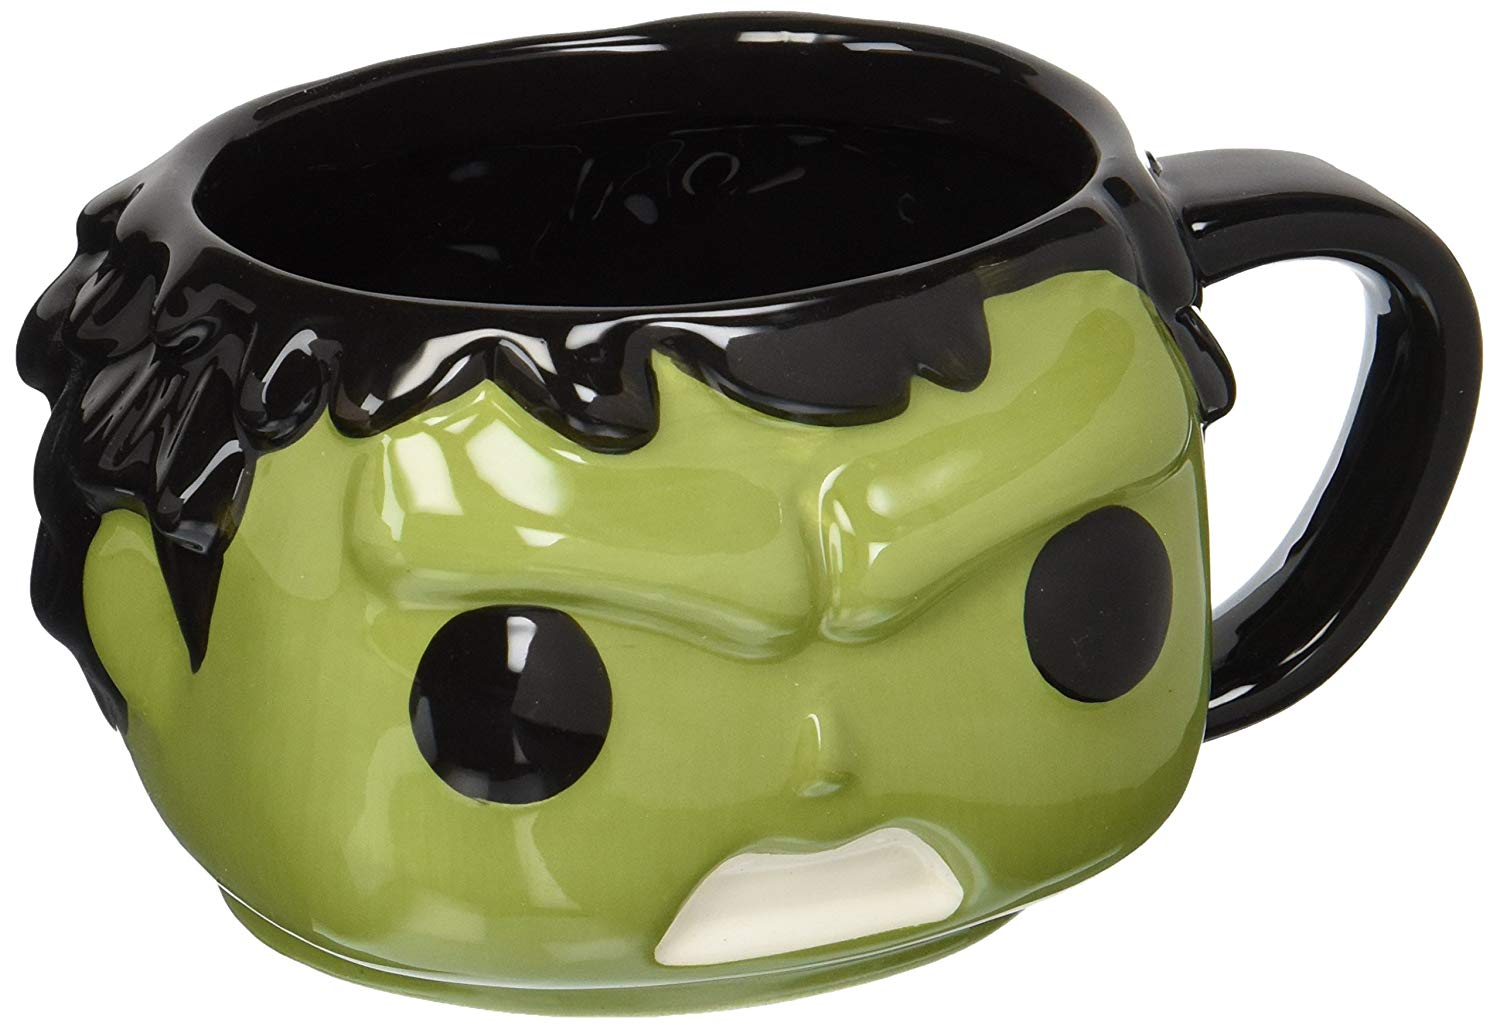 Tazza - Funko - Pop Home - Marvel - Hulk